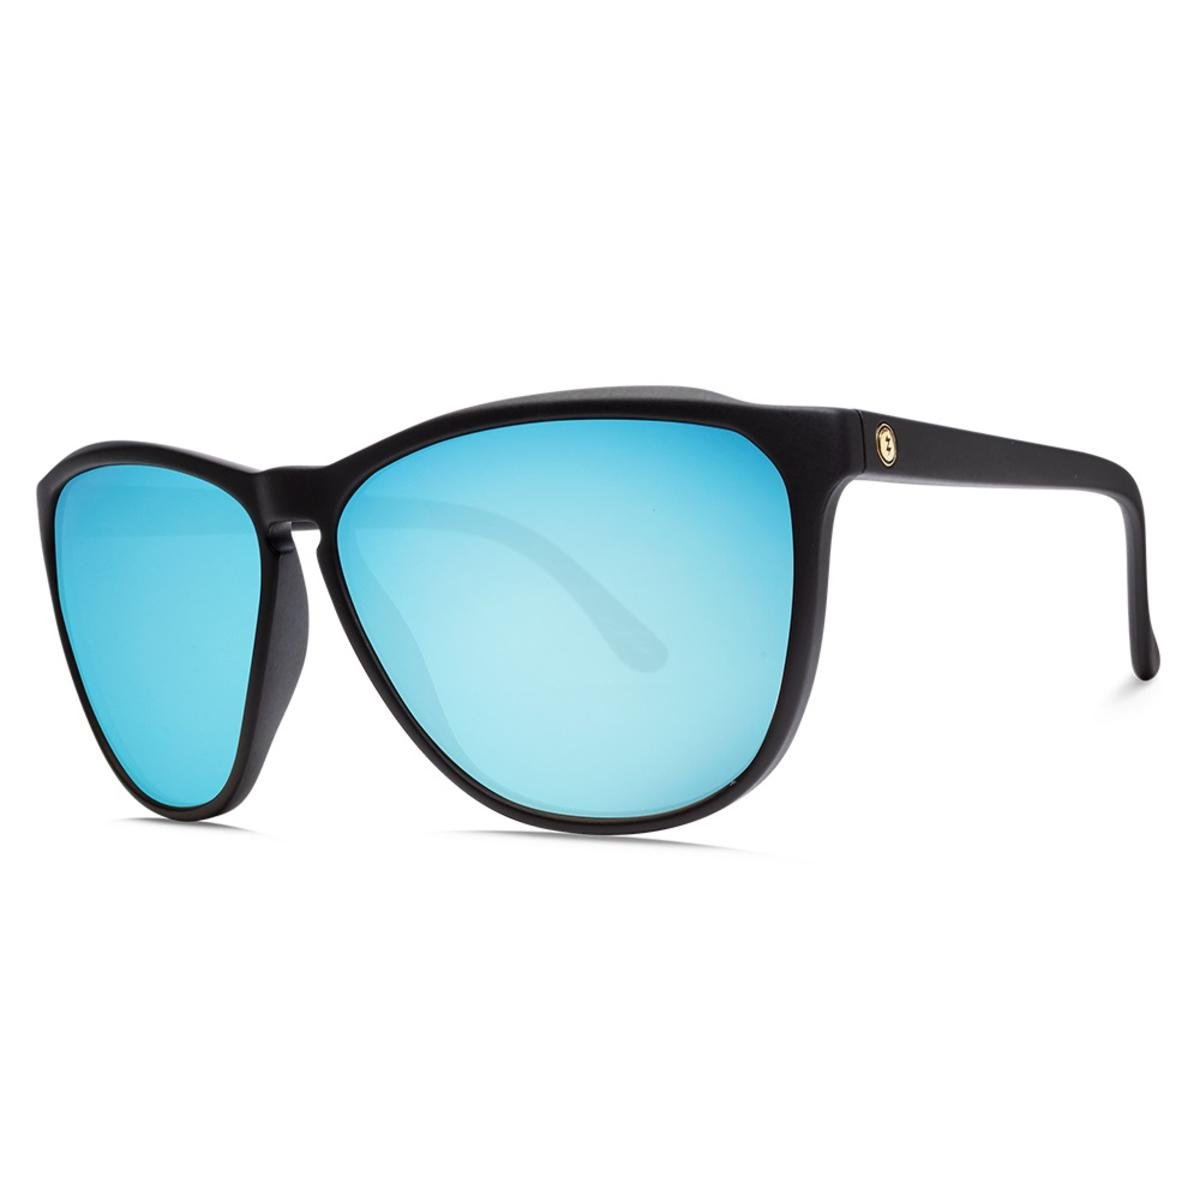 1096 Electric Encelia Polarized Sunglasses  Women's